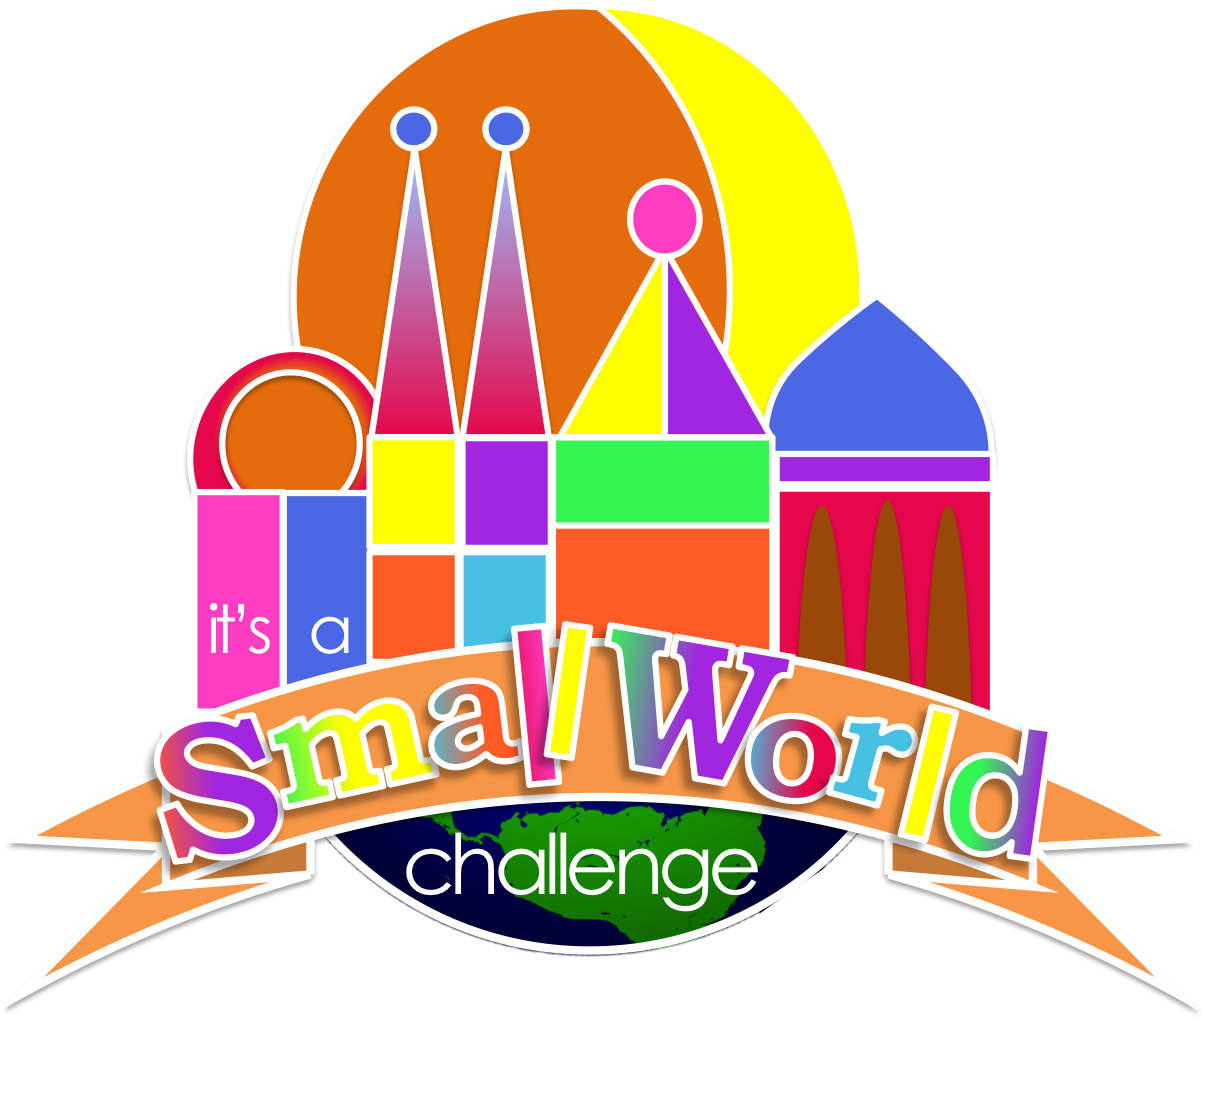 """The Small World Challenge is here!!! Who's crazy enough to ride, """"It's A Small World"""" (Your pick WDW or DL) from park open to close to BENEFIT Give Kids The World? Take a look at all the ways to get in on this insane quest and great cause... http://www.thesmallworldchallenge.com/ #DisneyWorld #WDW #Disneyland #SmallWorld #GKTW #GiveKidsTheWorld #Fundraise #Donate #VirtualRace #Running #ThemePark #MagicKingdom #MK"""